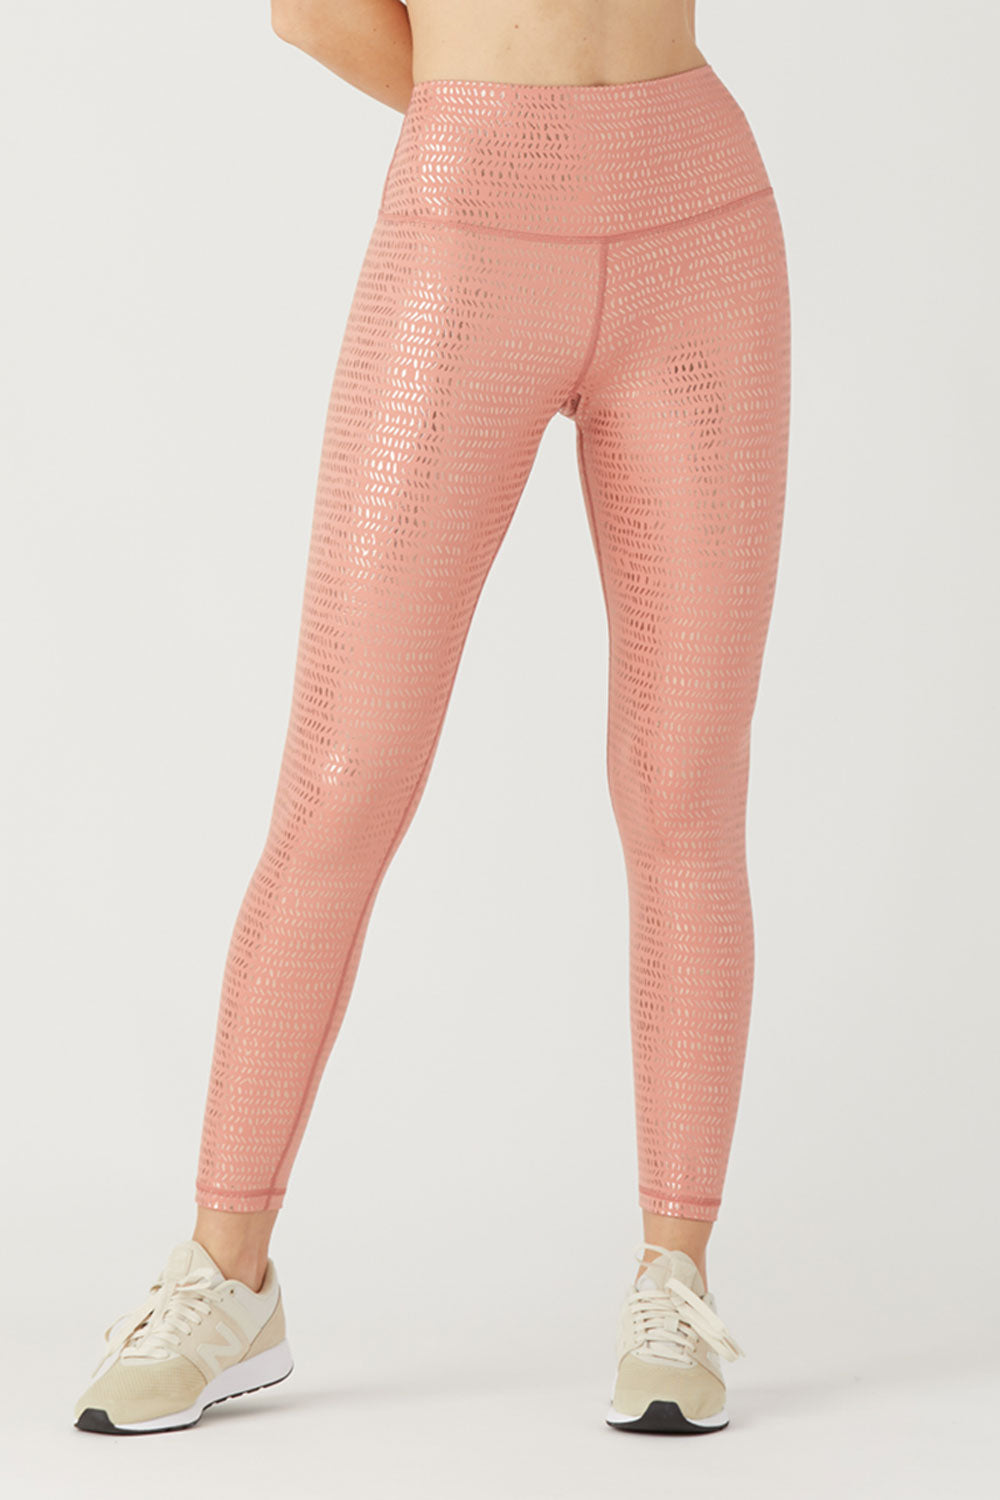 High Power Legging II - Canyon Stone Pebble Gloss